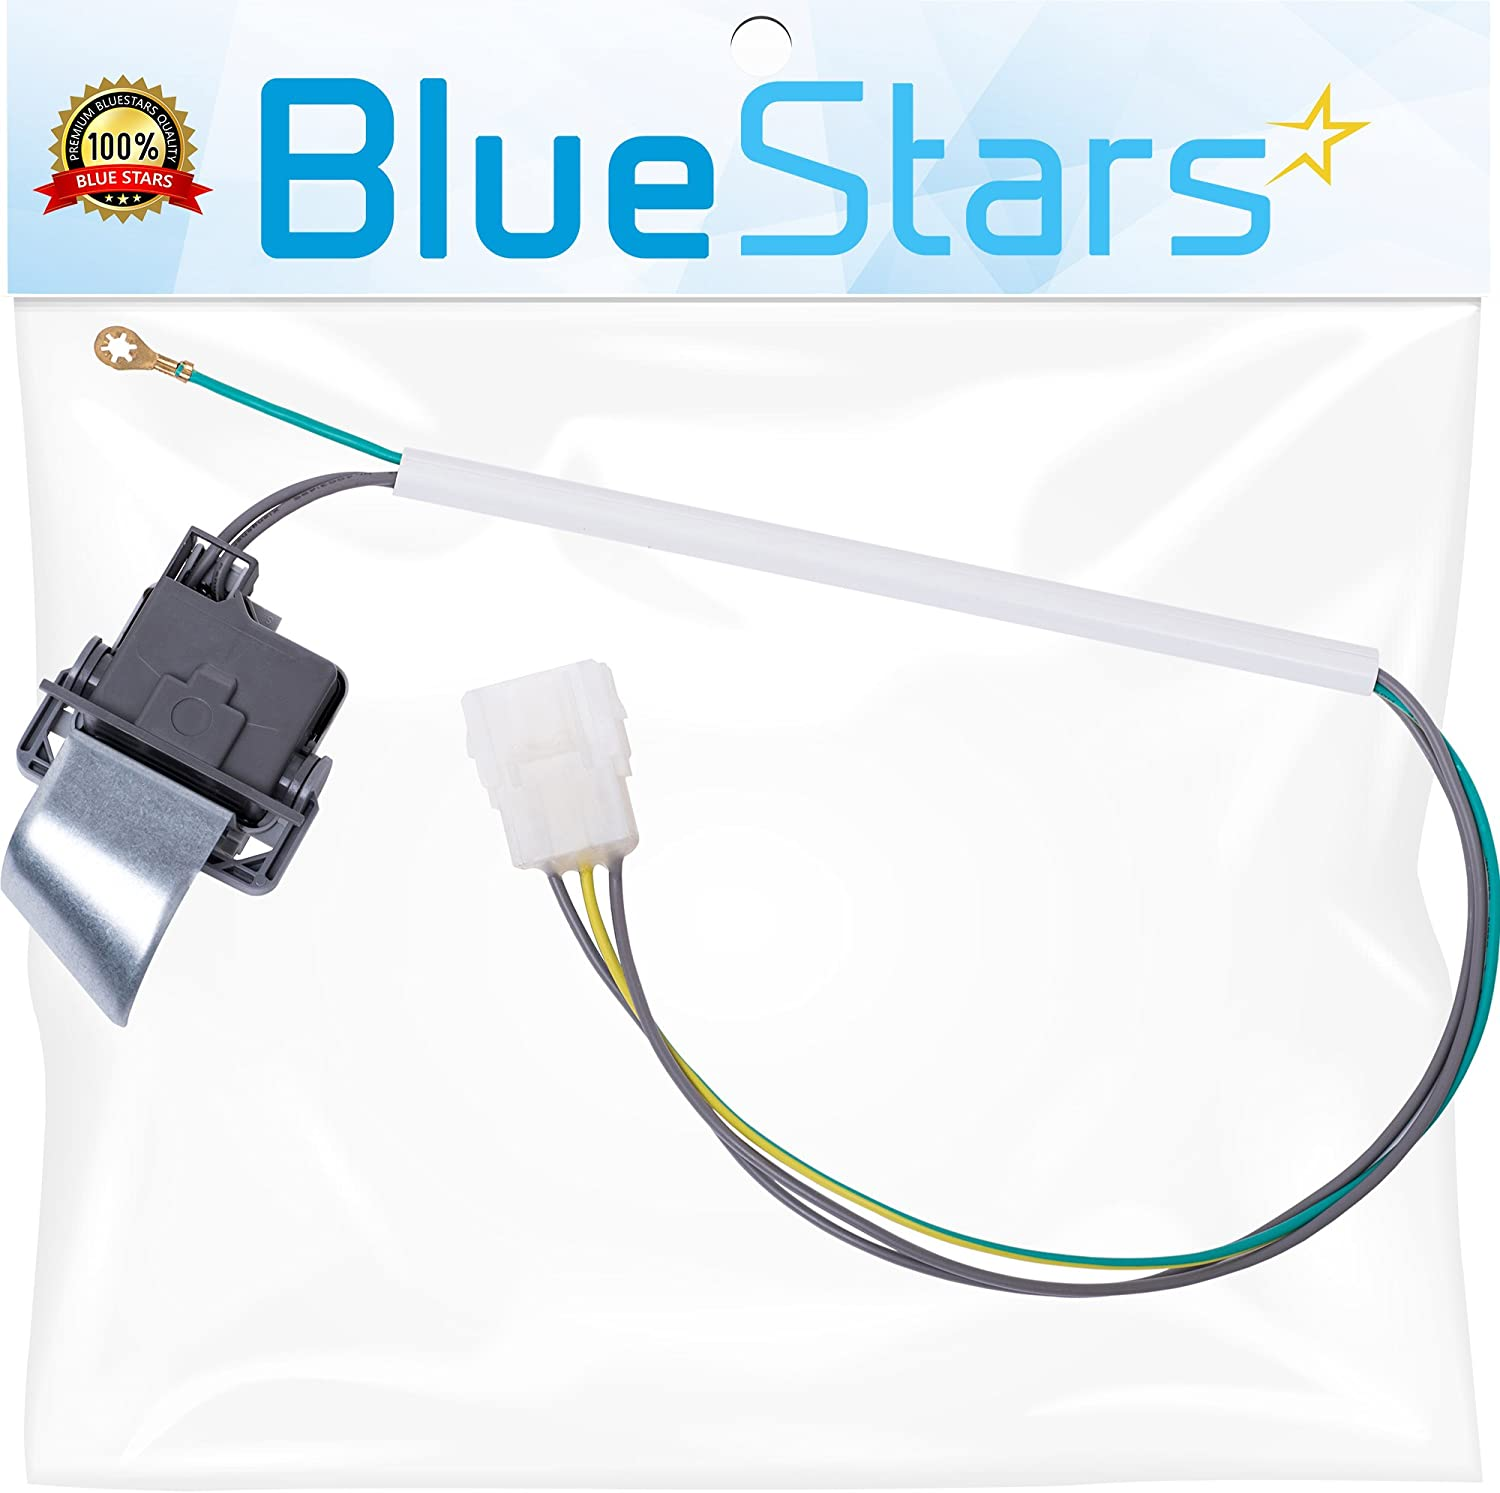 amazon.com: ultra durable 3949238 washer lid switch replacement part by  blue stars - exact fit for whirlpool & kenmore washers - enhanced  durability with metal shield - replaces wp3949238 wp3949238vp: home  improvement  amazon.com